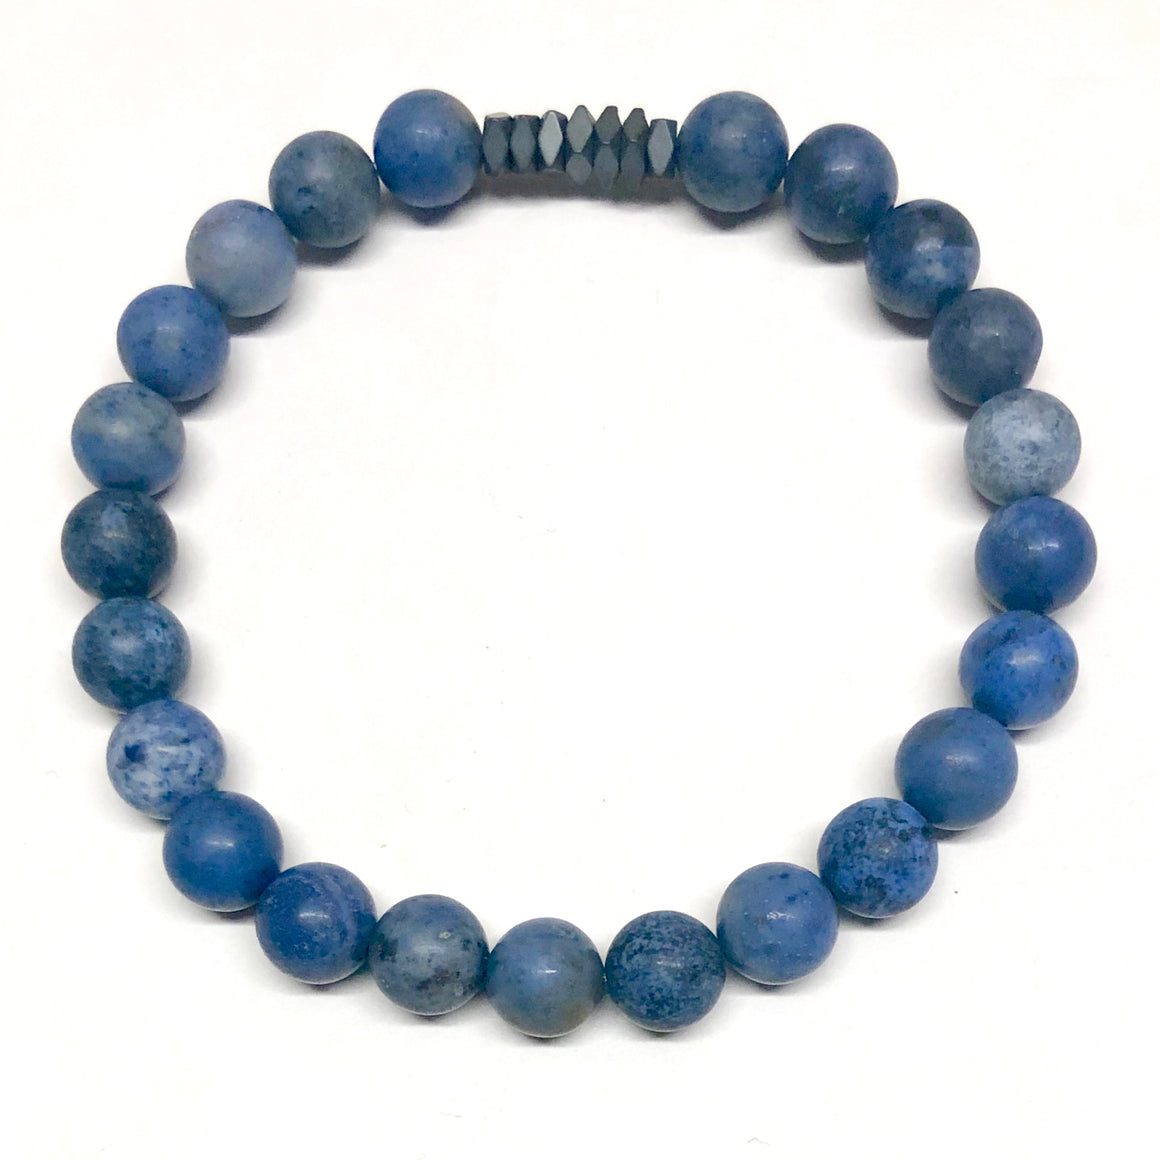 Rio Men's Beaded Stone Bracelet